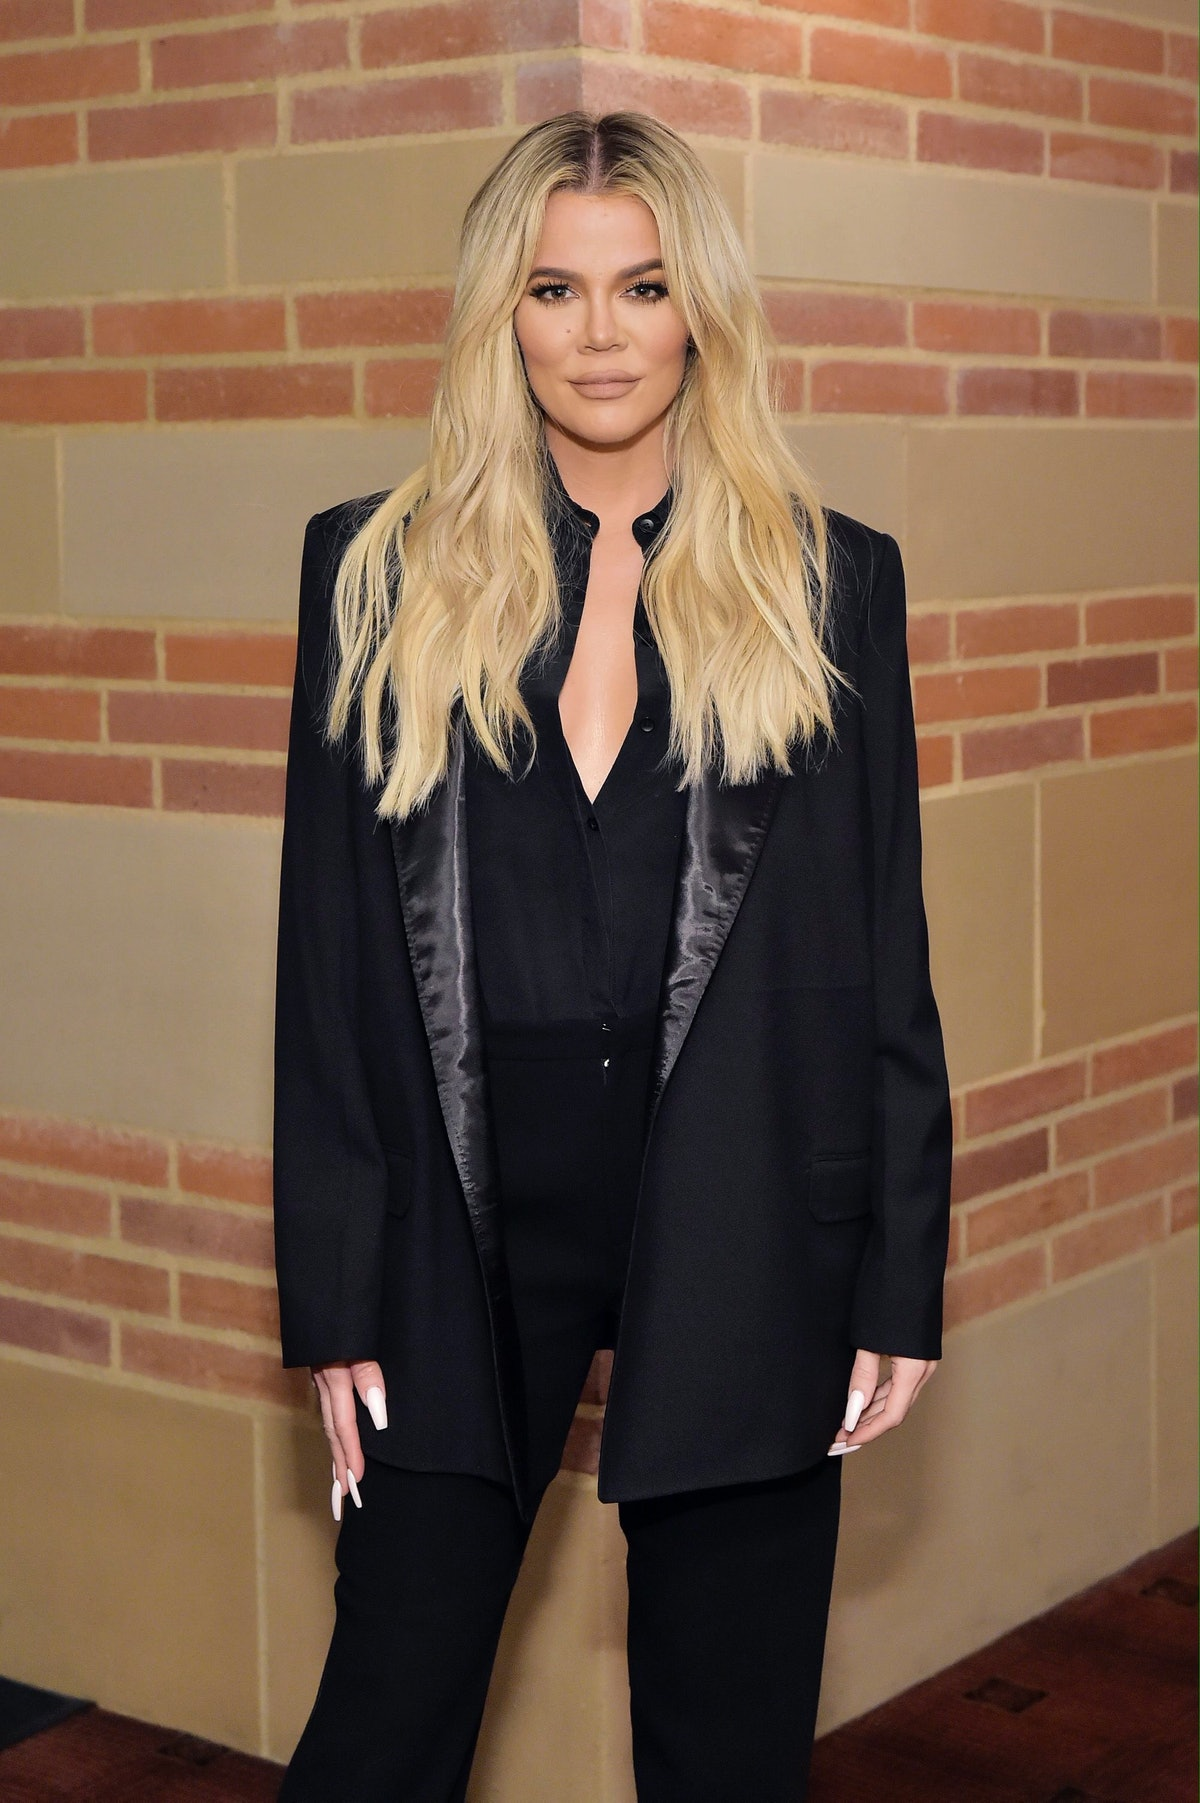 Comeback queen Khloé Kardashian, pictured here in blonde hair and an all black ensemble, just went off on another uninformed hater.